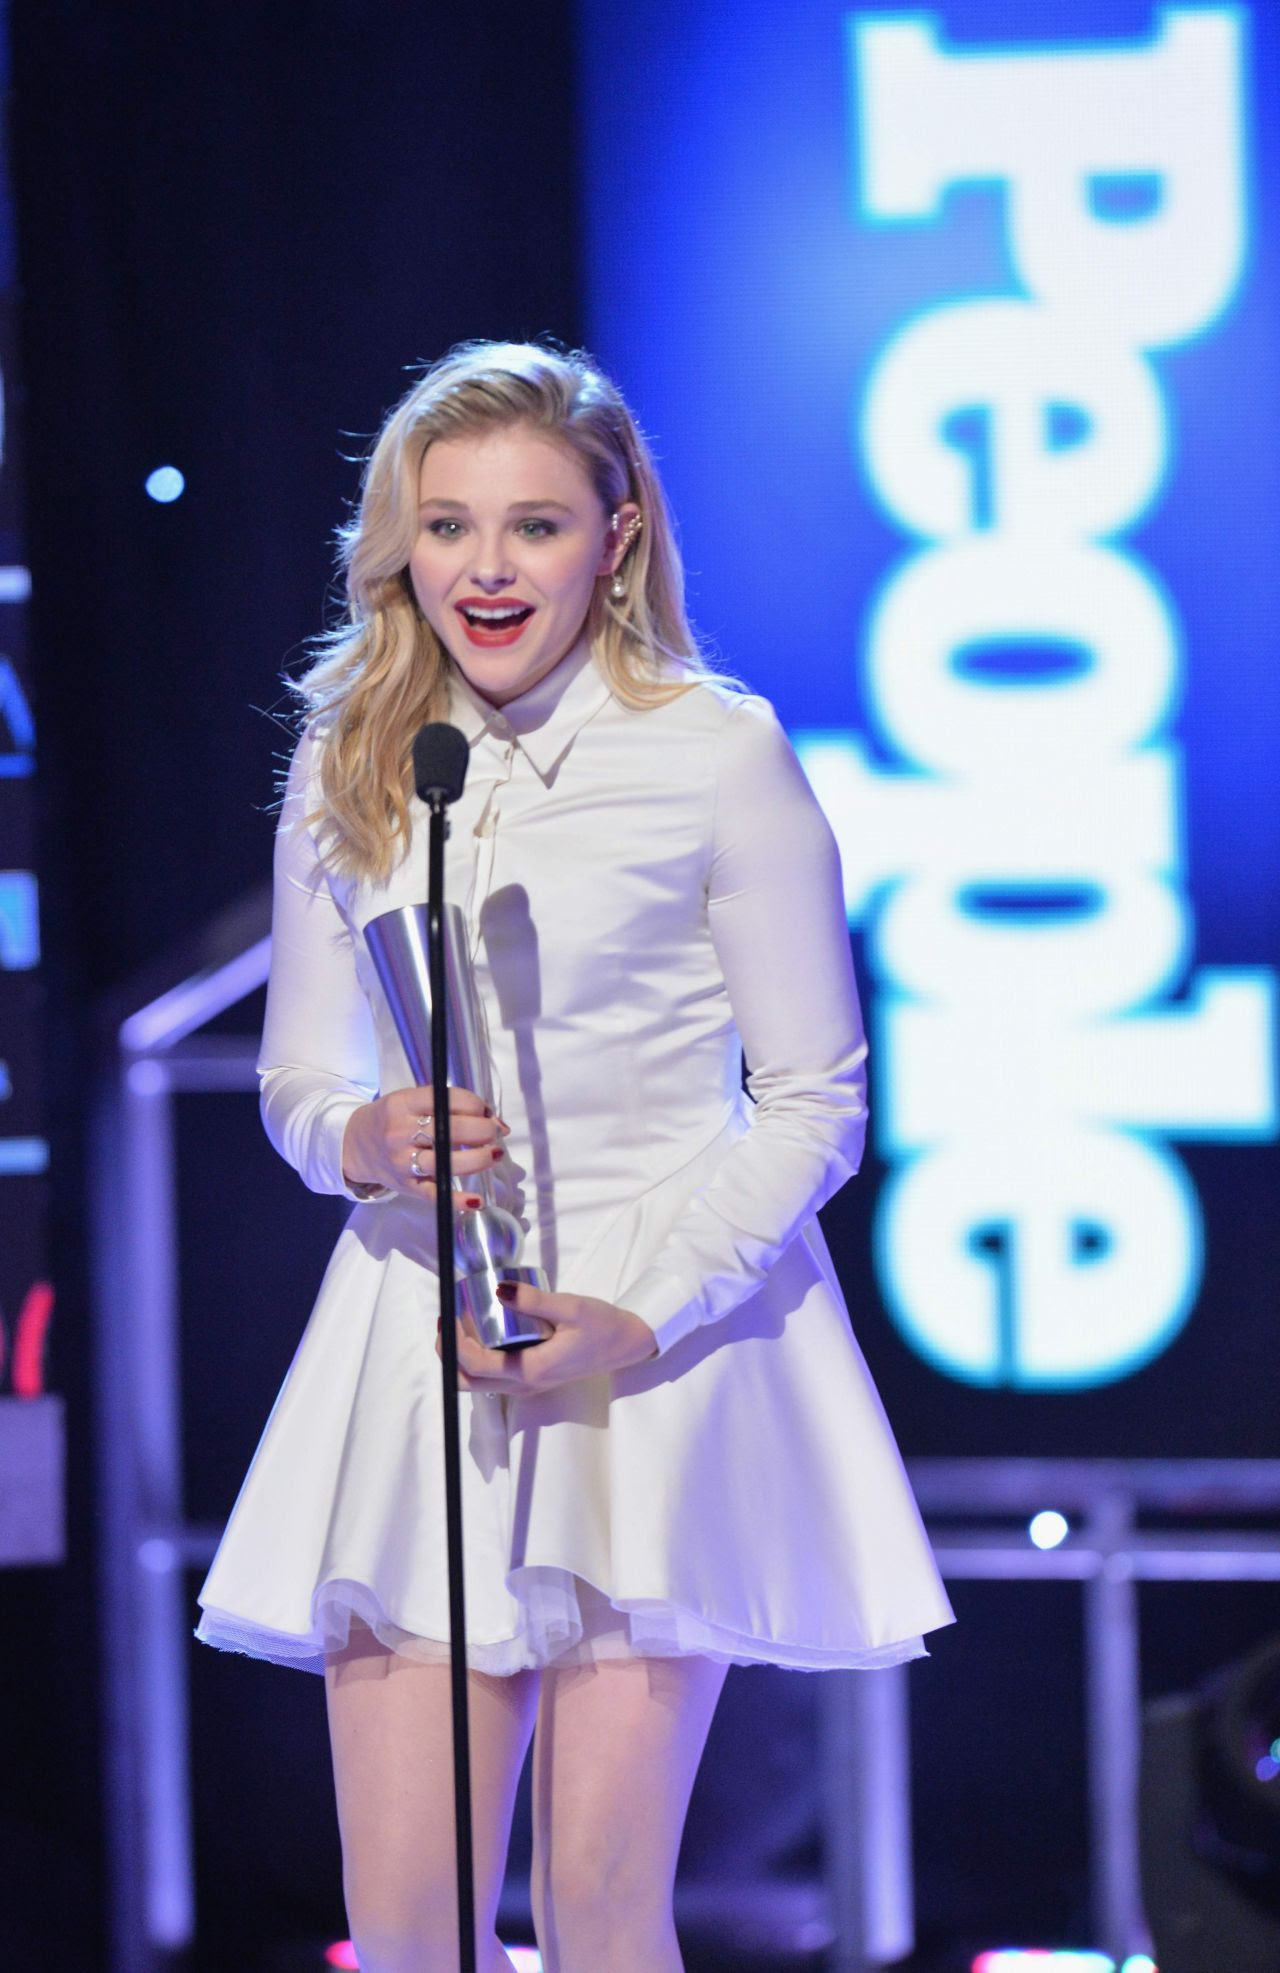 http://celebmafia.com/wp-content/uploads/2014/12/chloe-moretz-2014-people-magazine-awards-in-beverly-hills_13.jpg